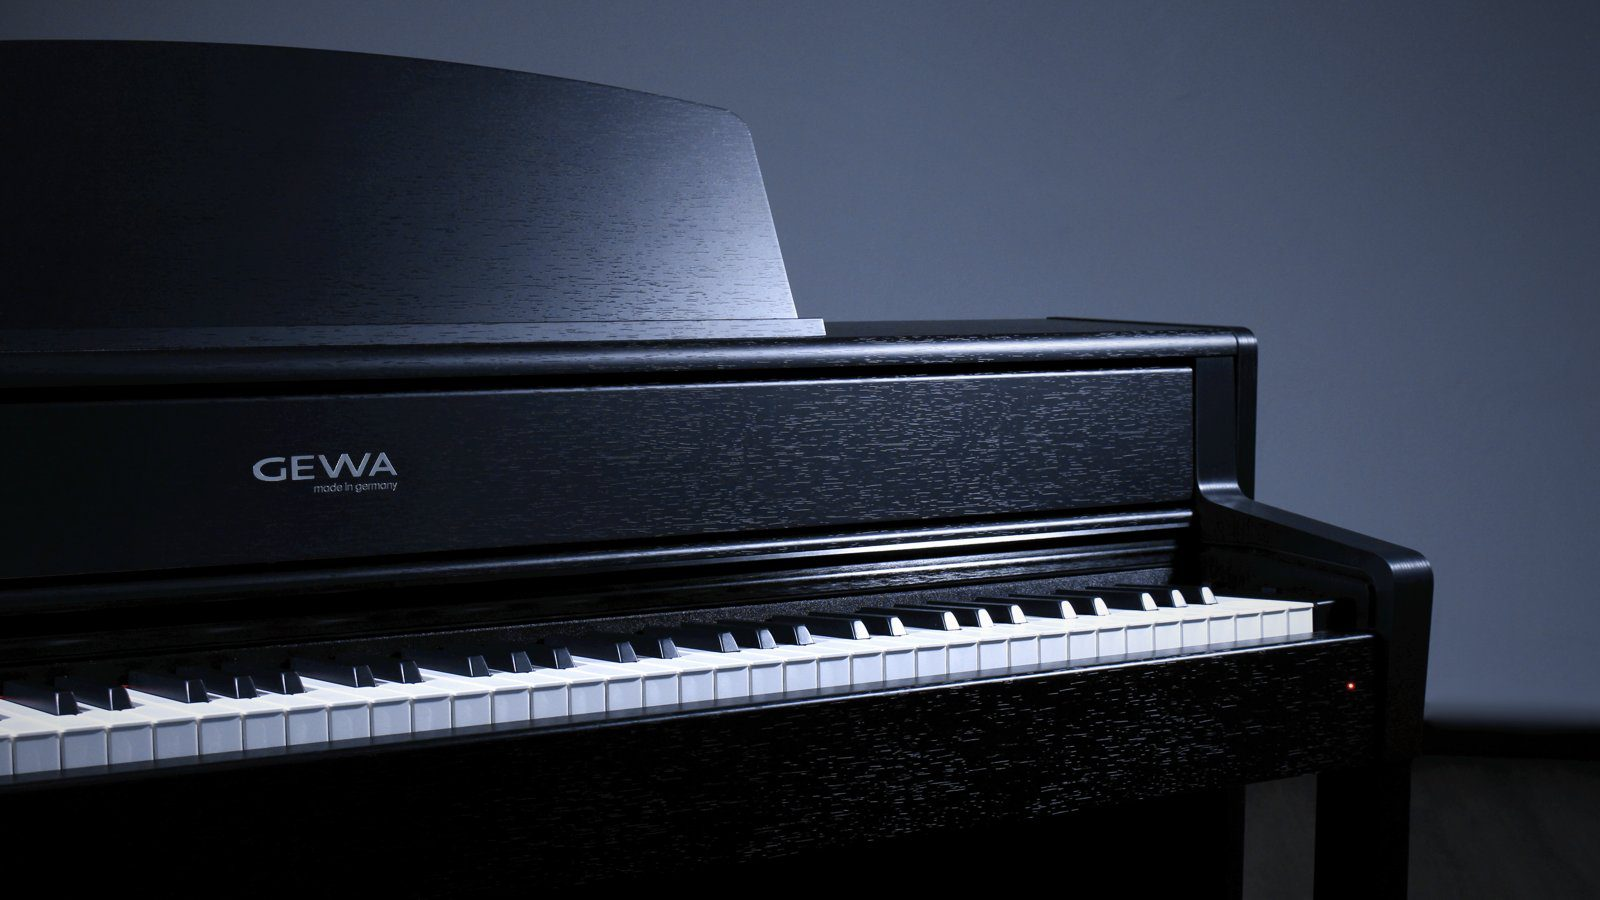 GEWA UP 380 G - Homepiano Made in Germany